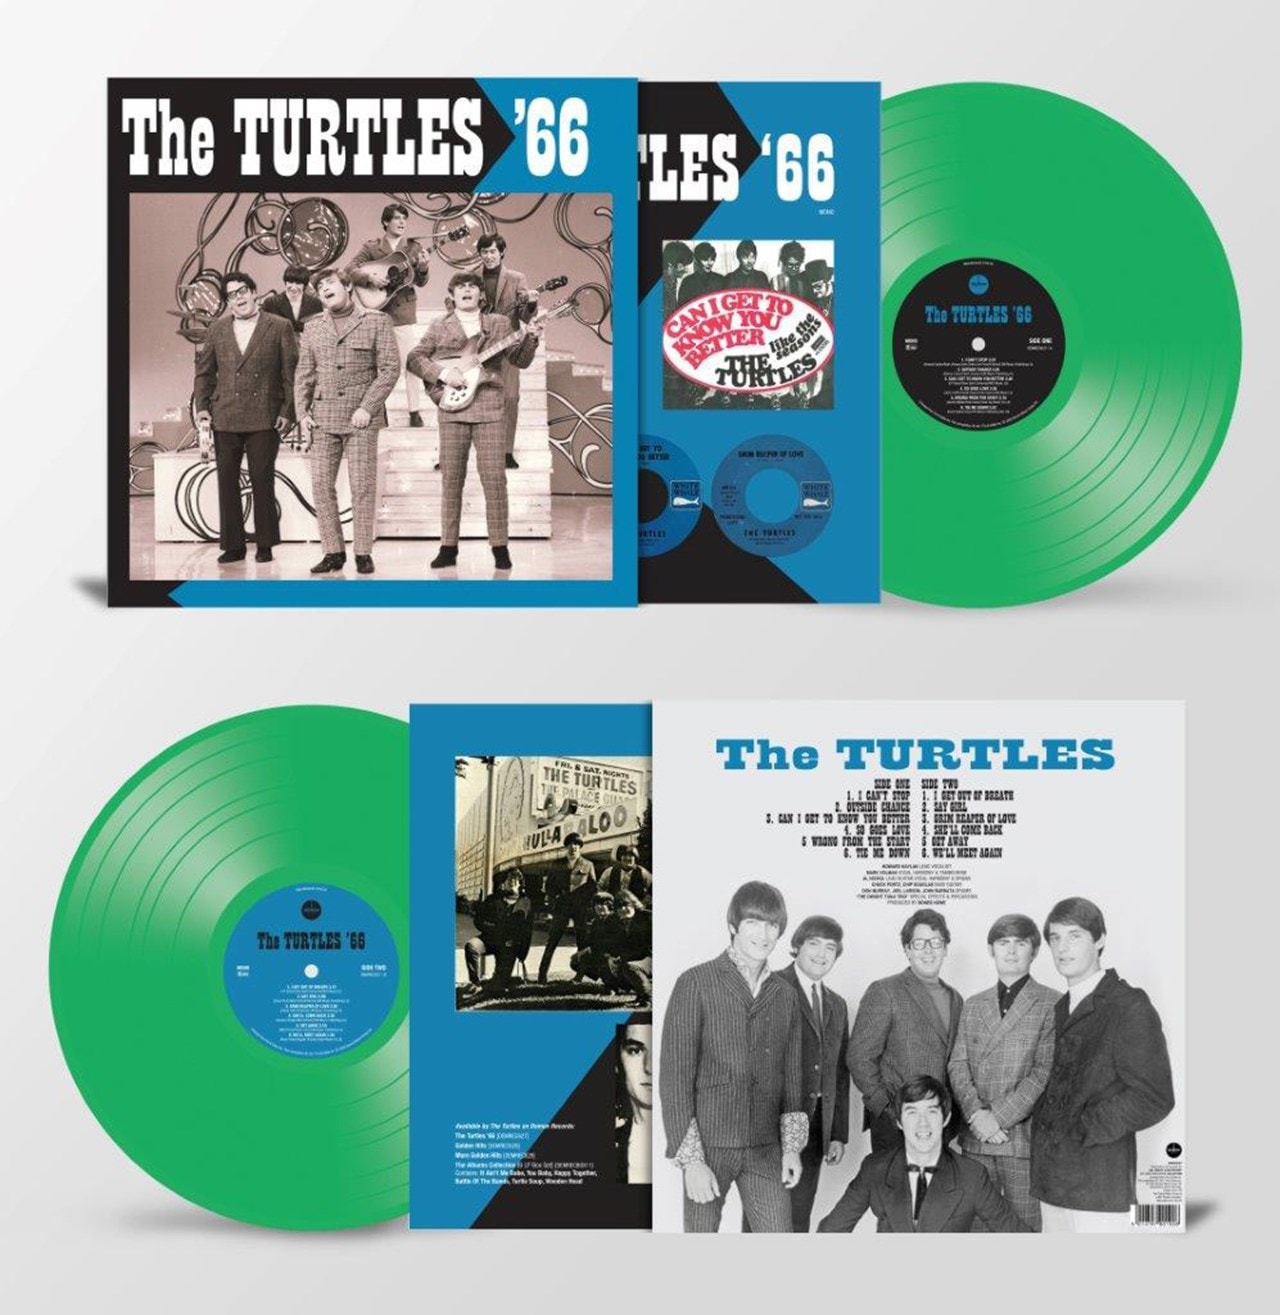 The Turtles '66 - 2